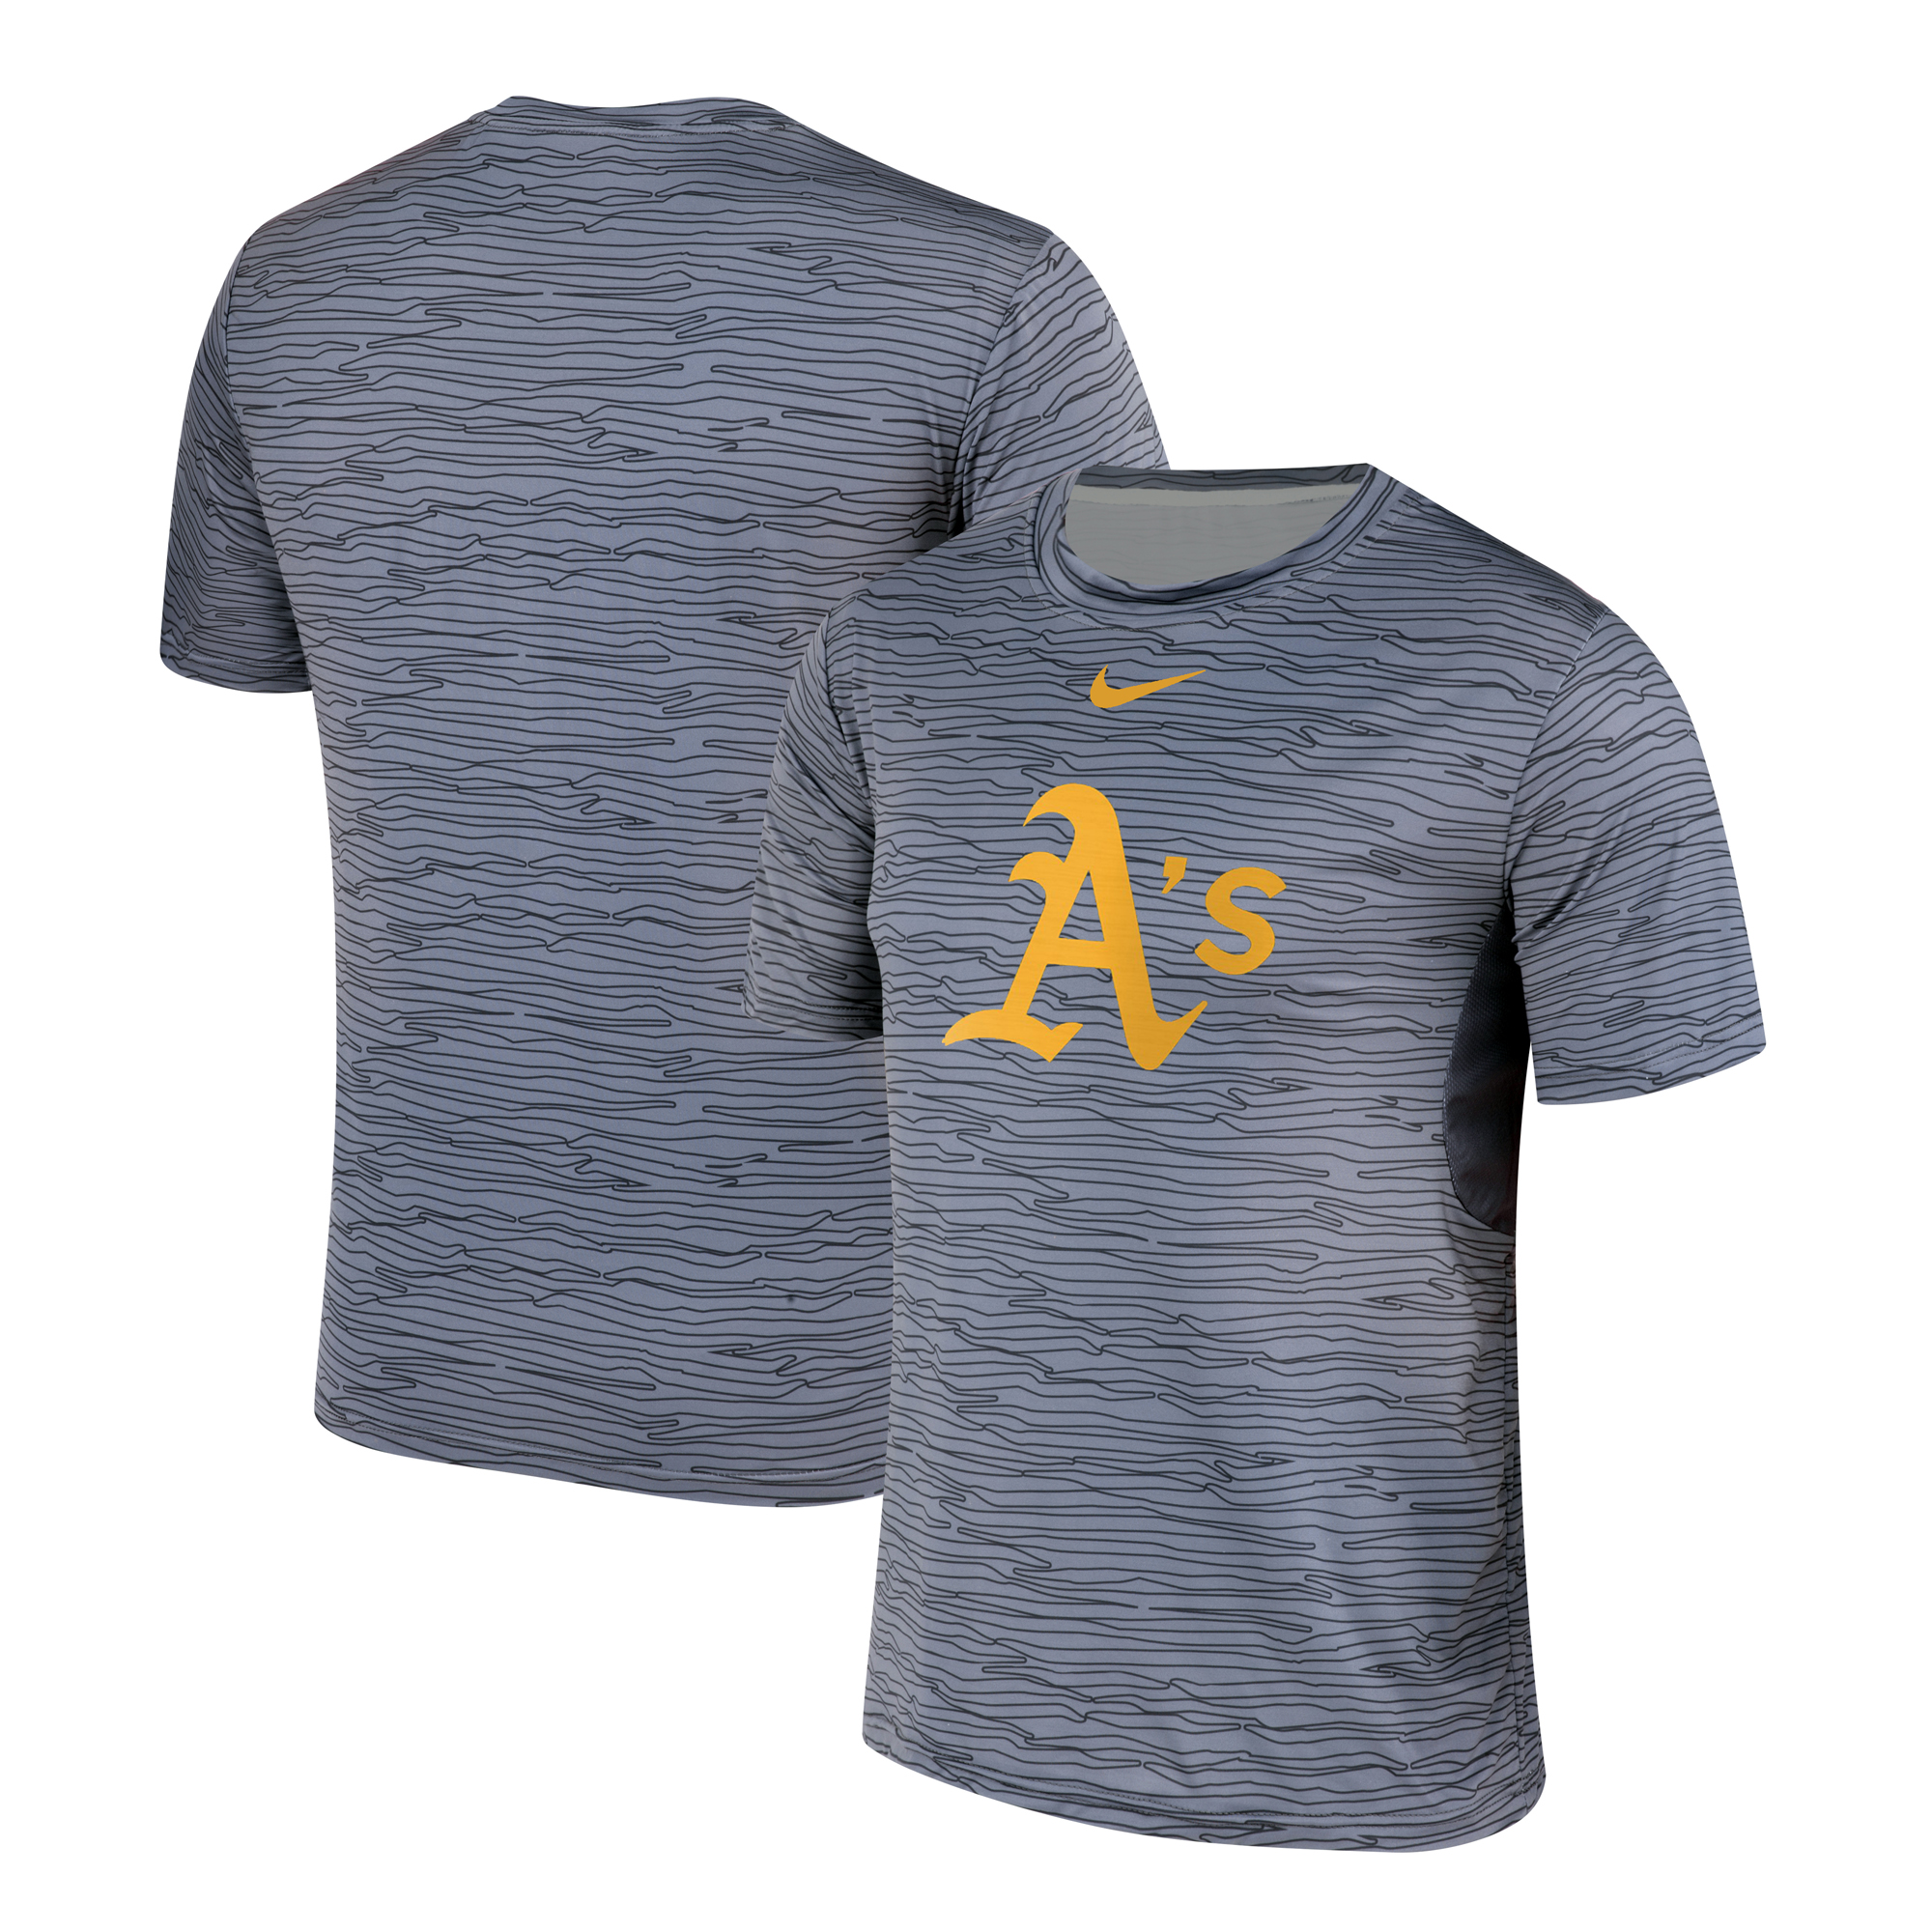 Nike Oakland Athletics Gray Black Striped Logo Performance T-Shirt